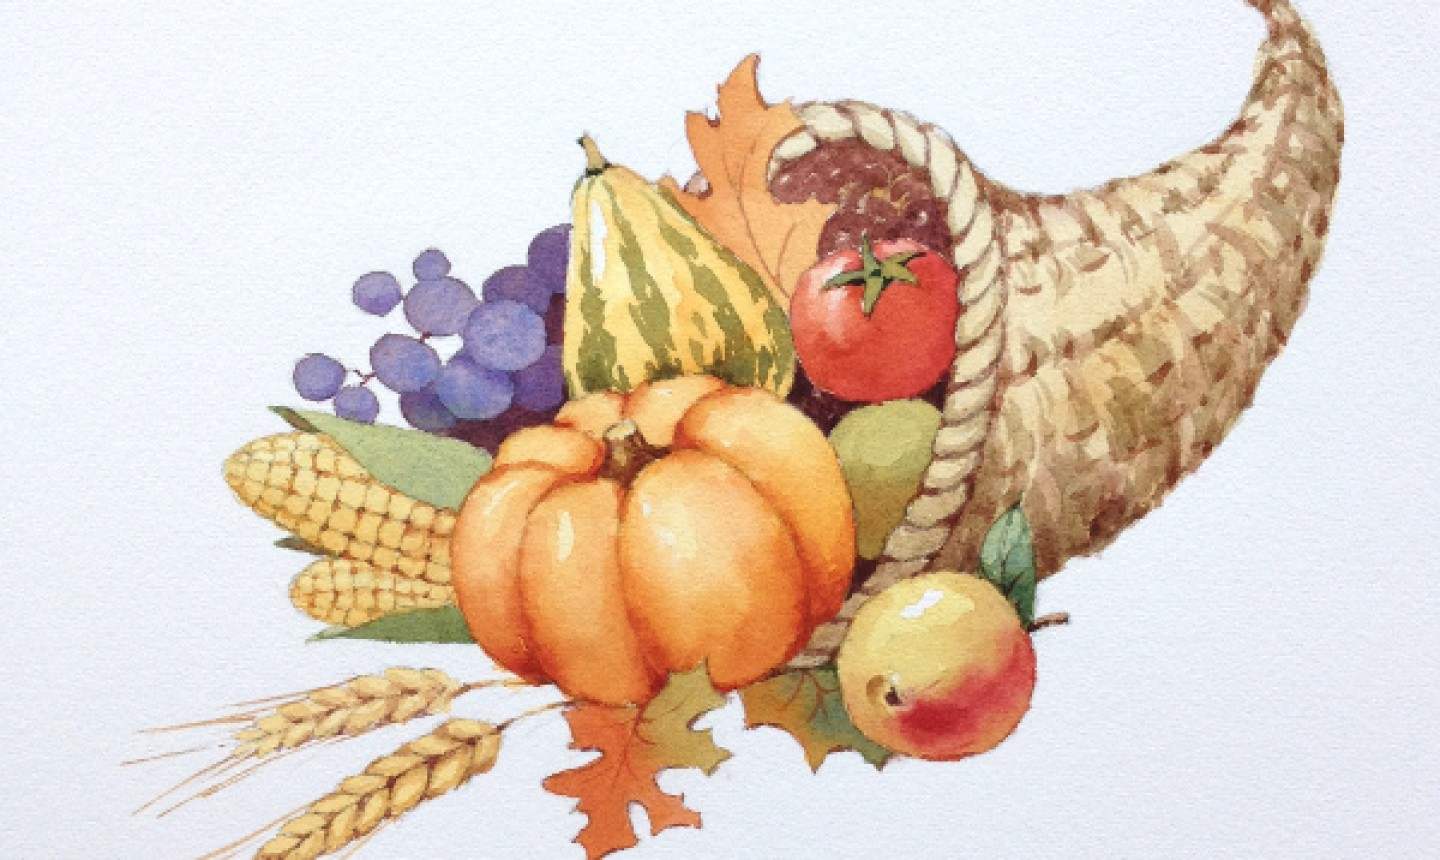 Completed cornucopia painting